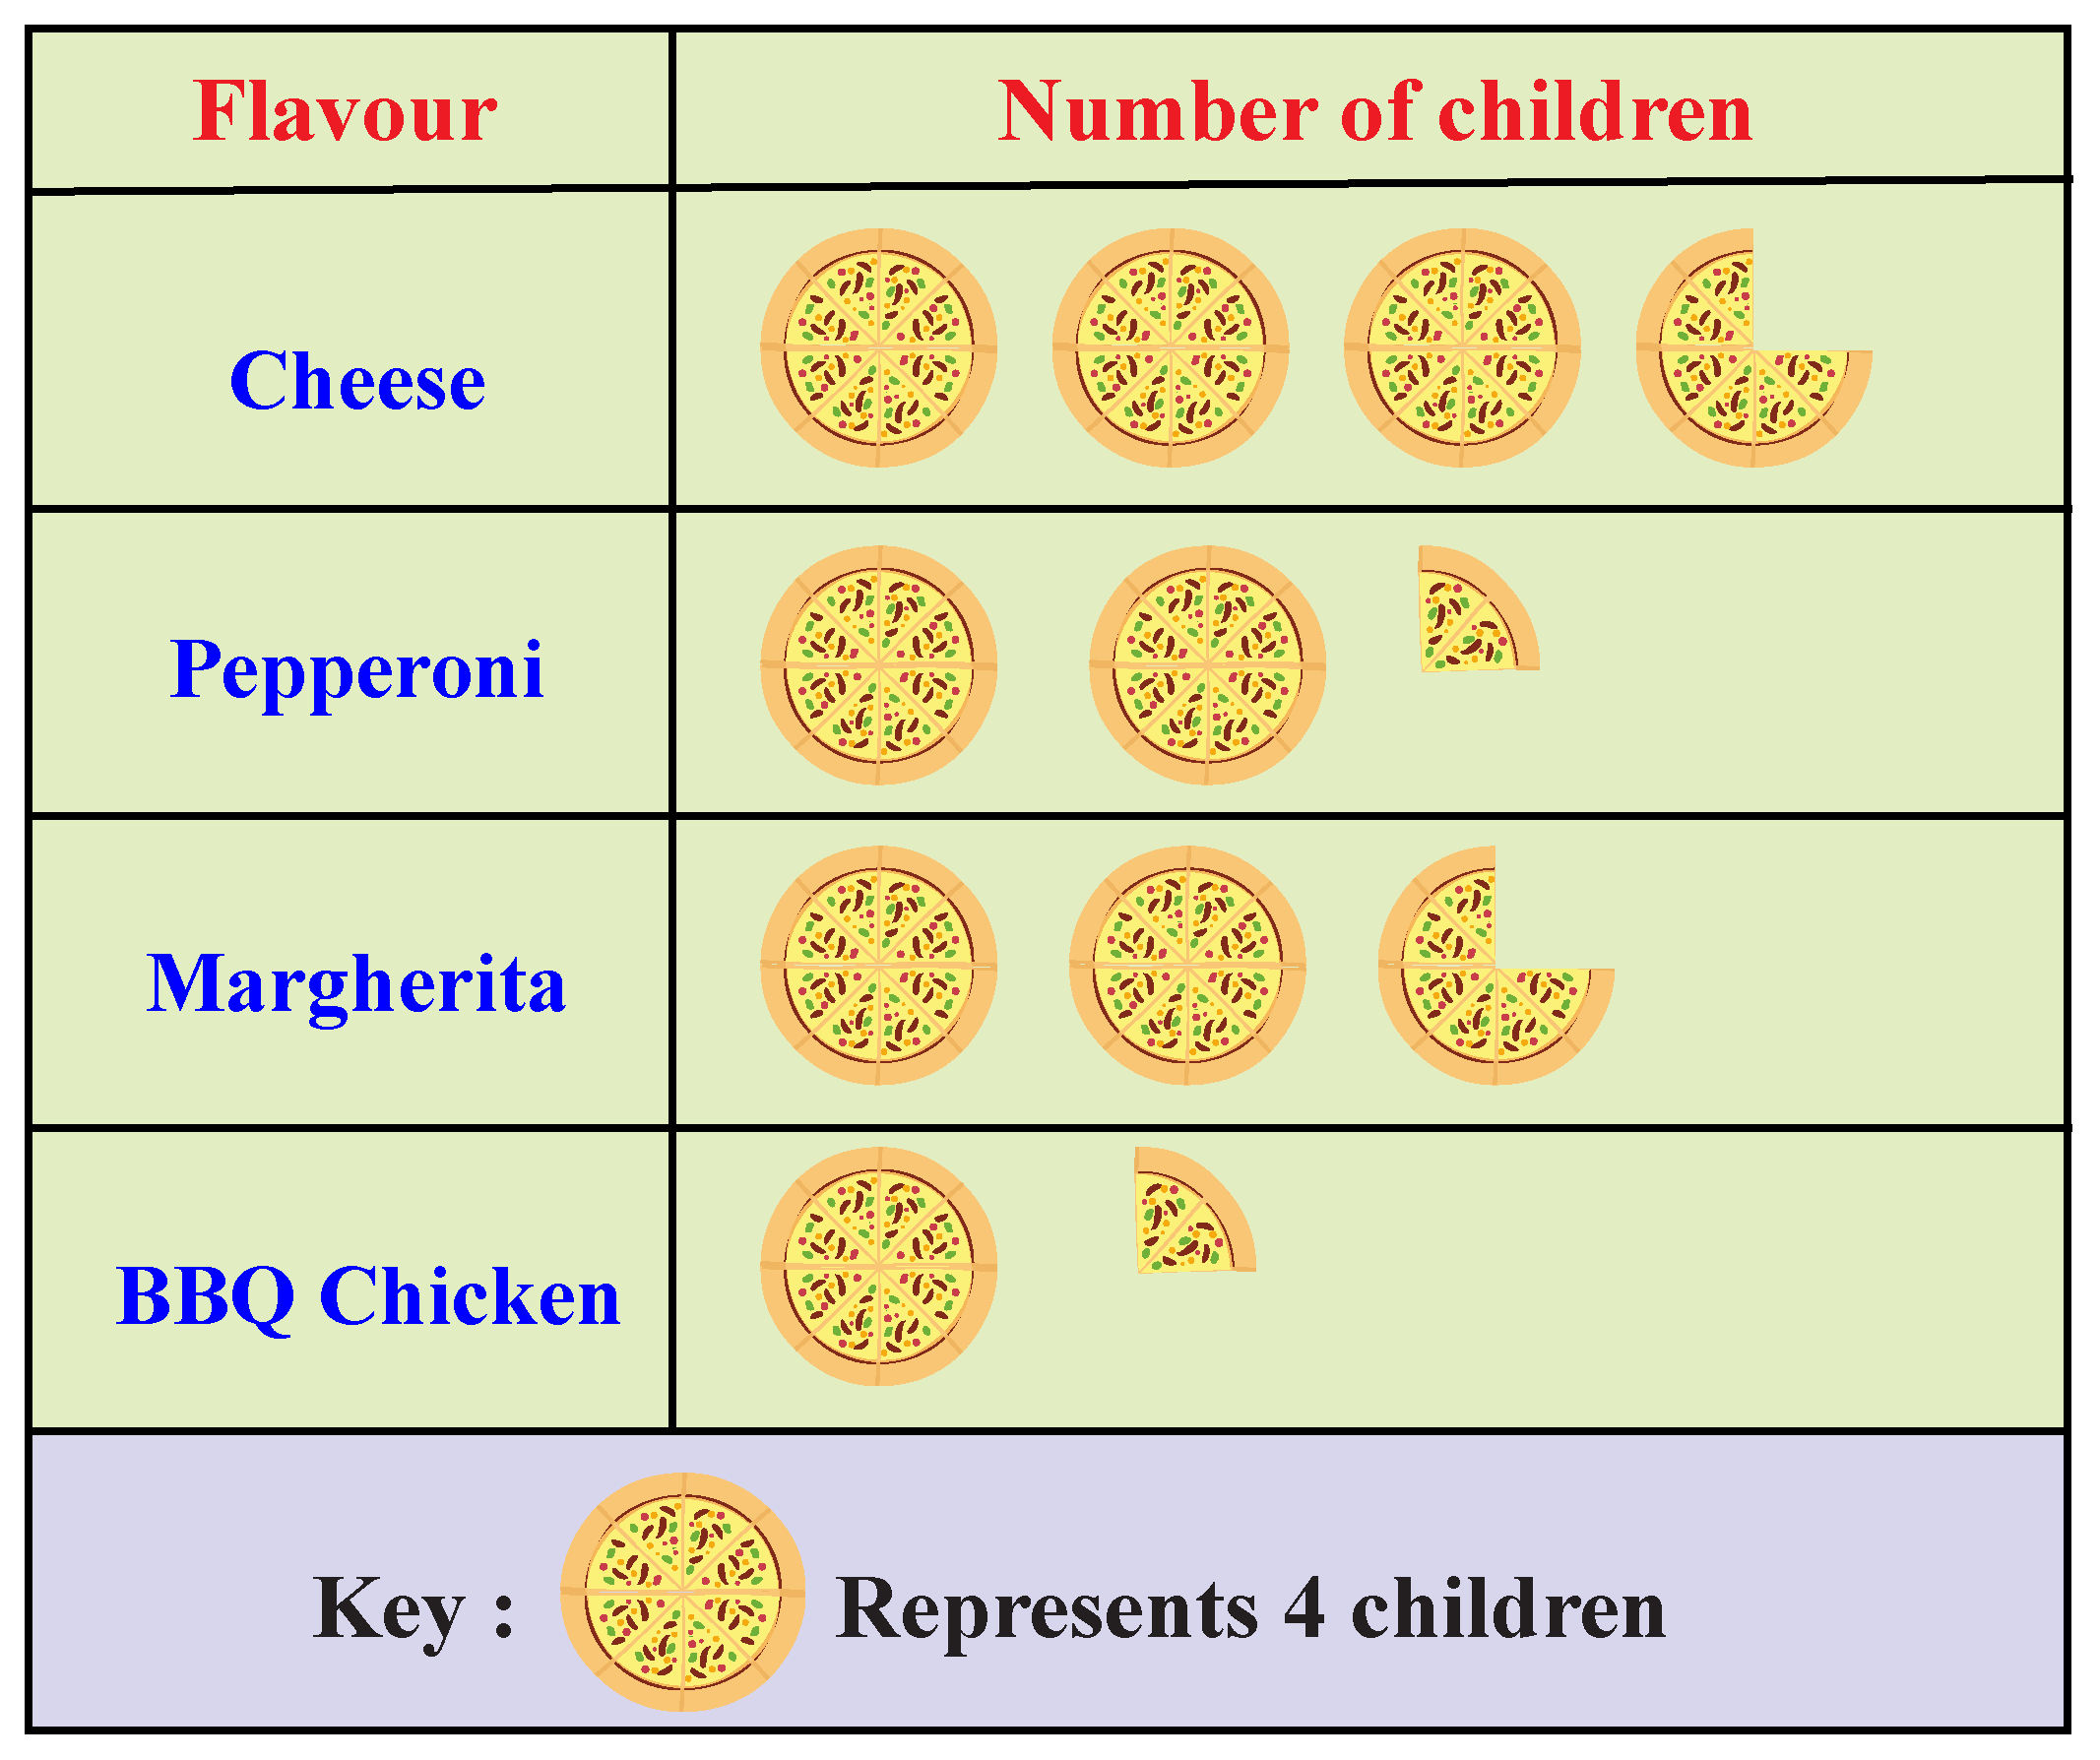 Example of a pictograph depicting various flavors of pizza and the number of children who like each flavour.